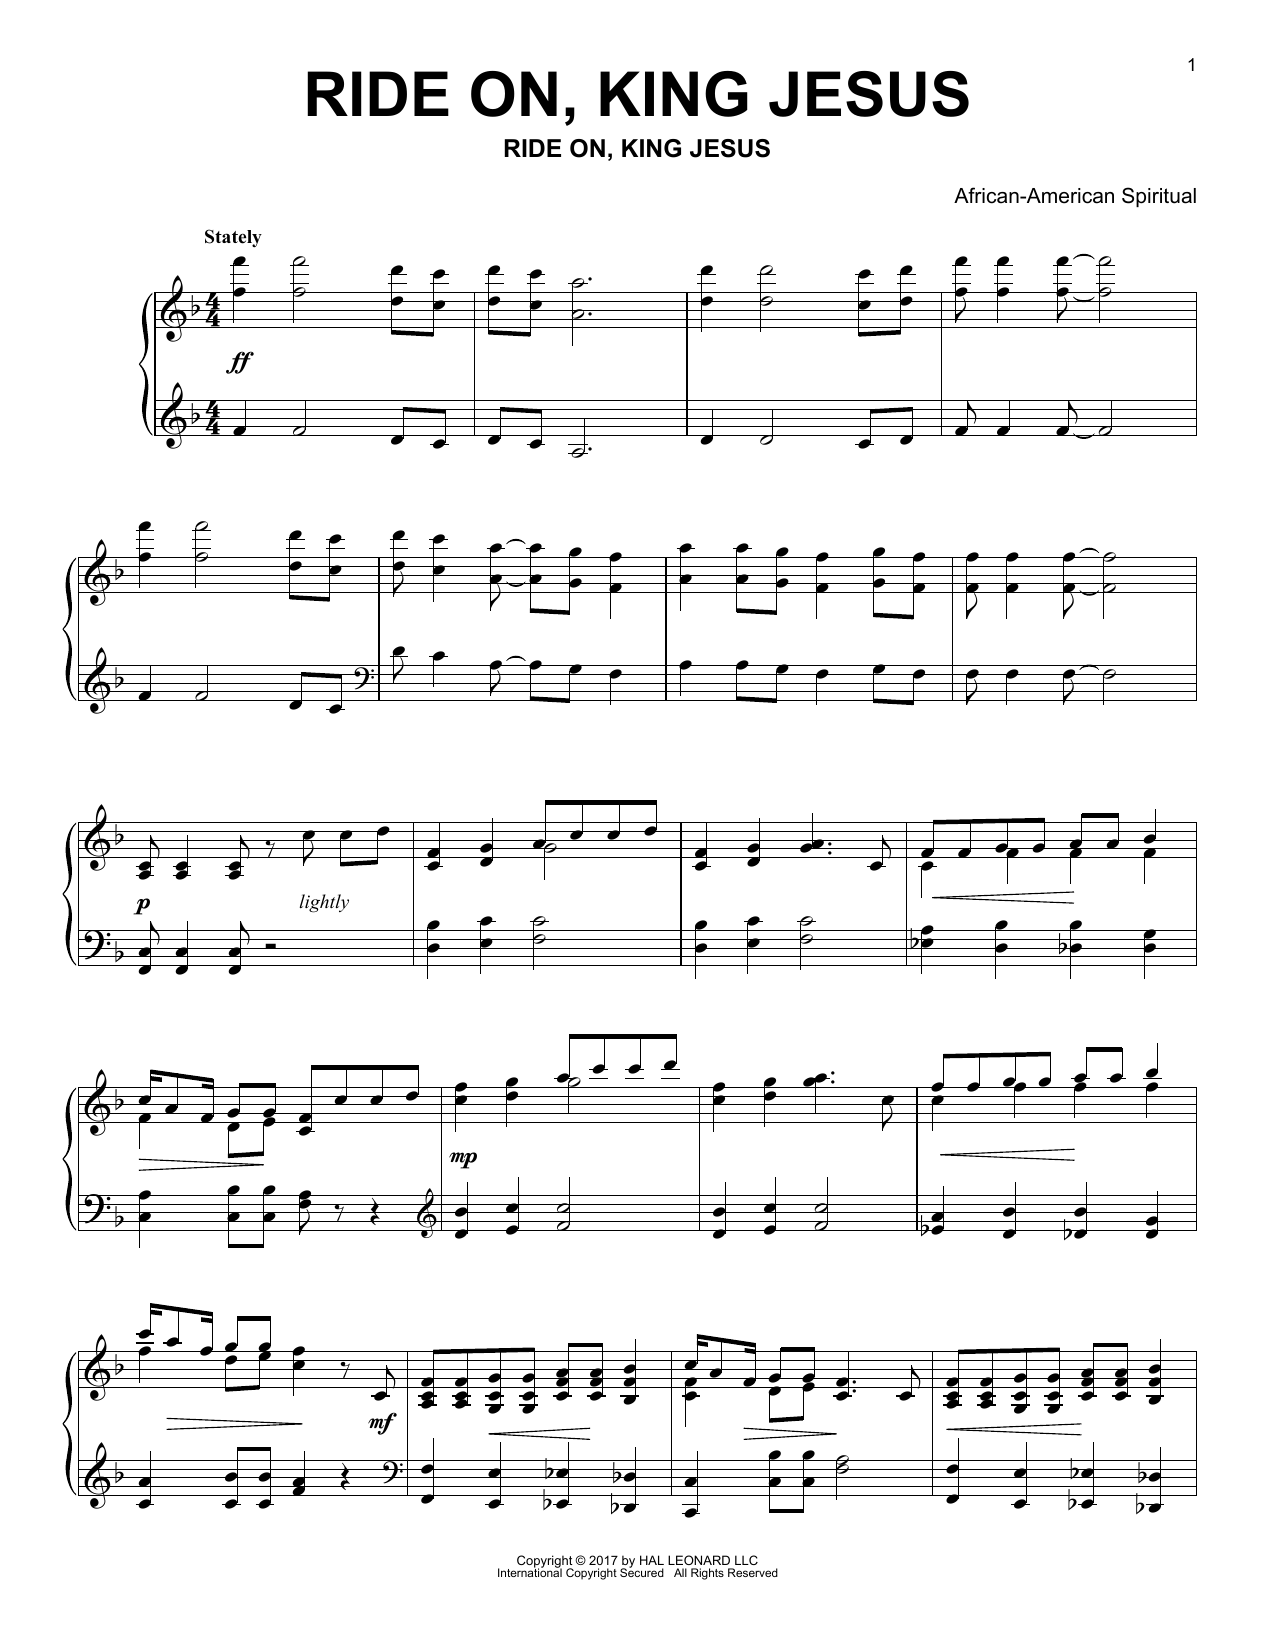 Download African-American Spiritual 'Ride On, King Jesus' Digital Sheet Music Notes & Chords and start playing in minutes